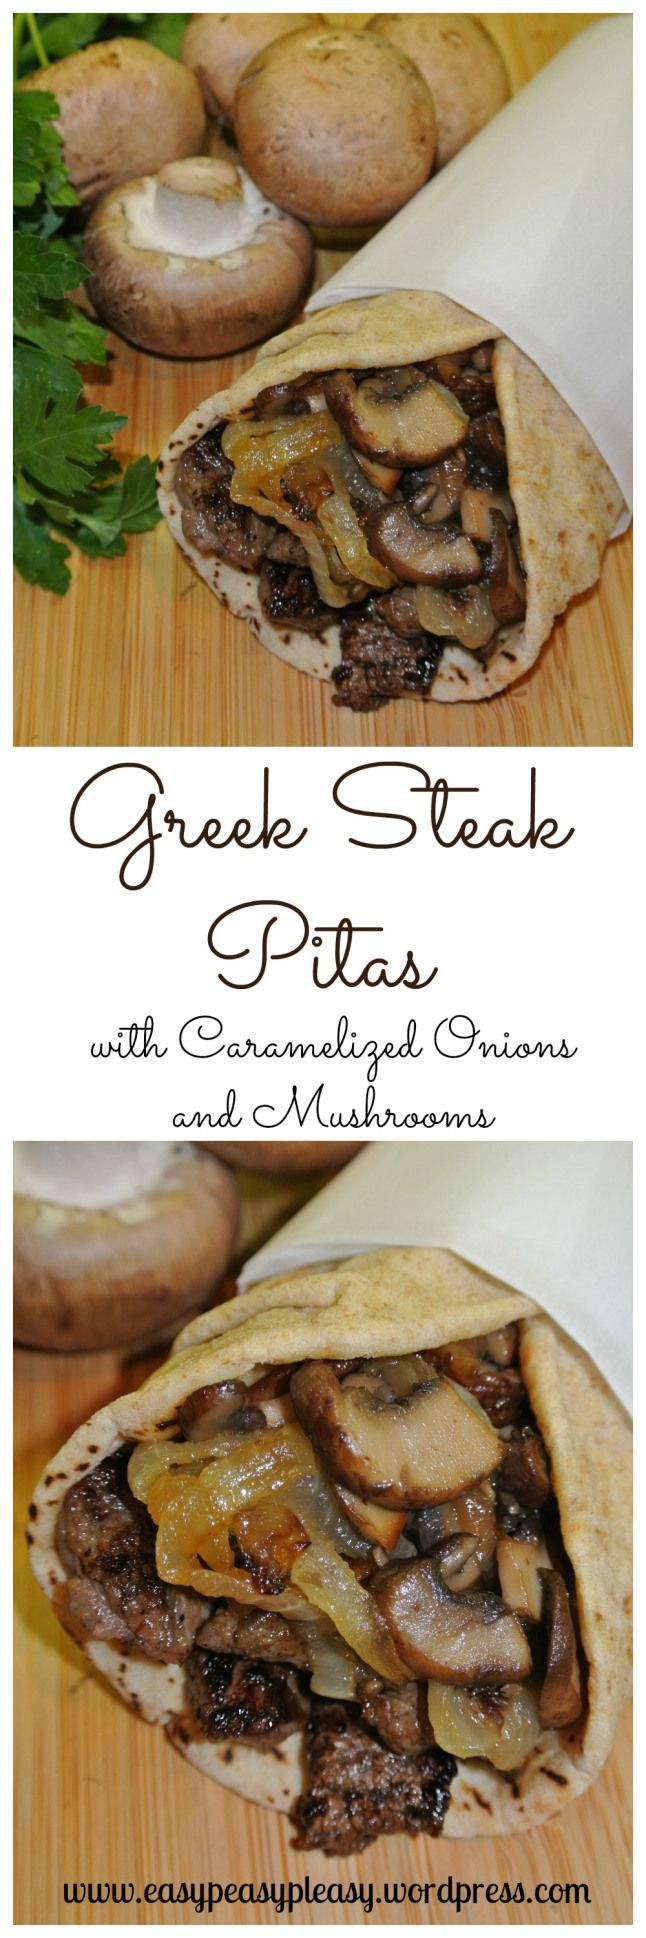 Greek Steak Pitas with Caramelized Onions and Mushrooms